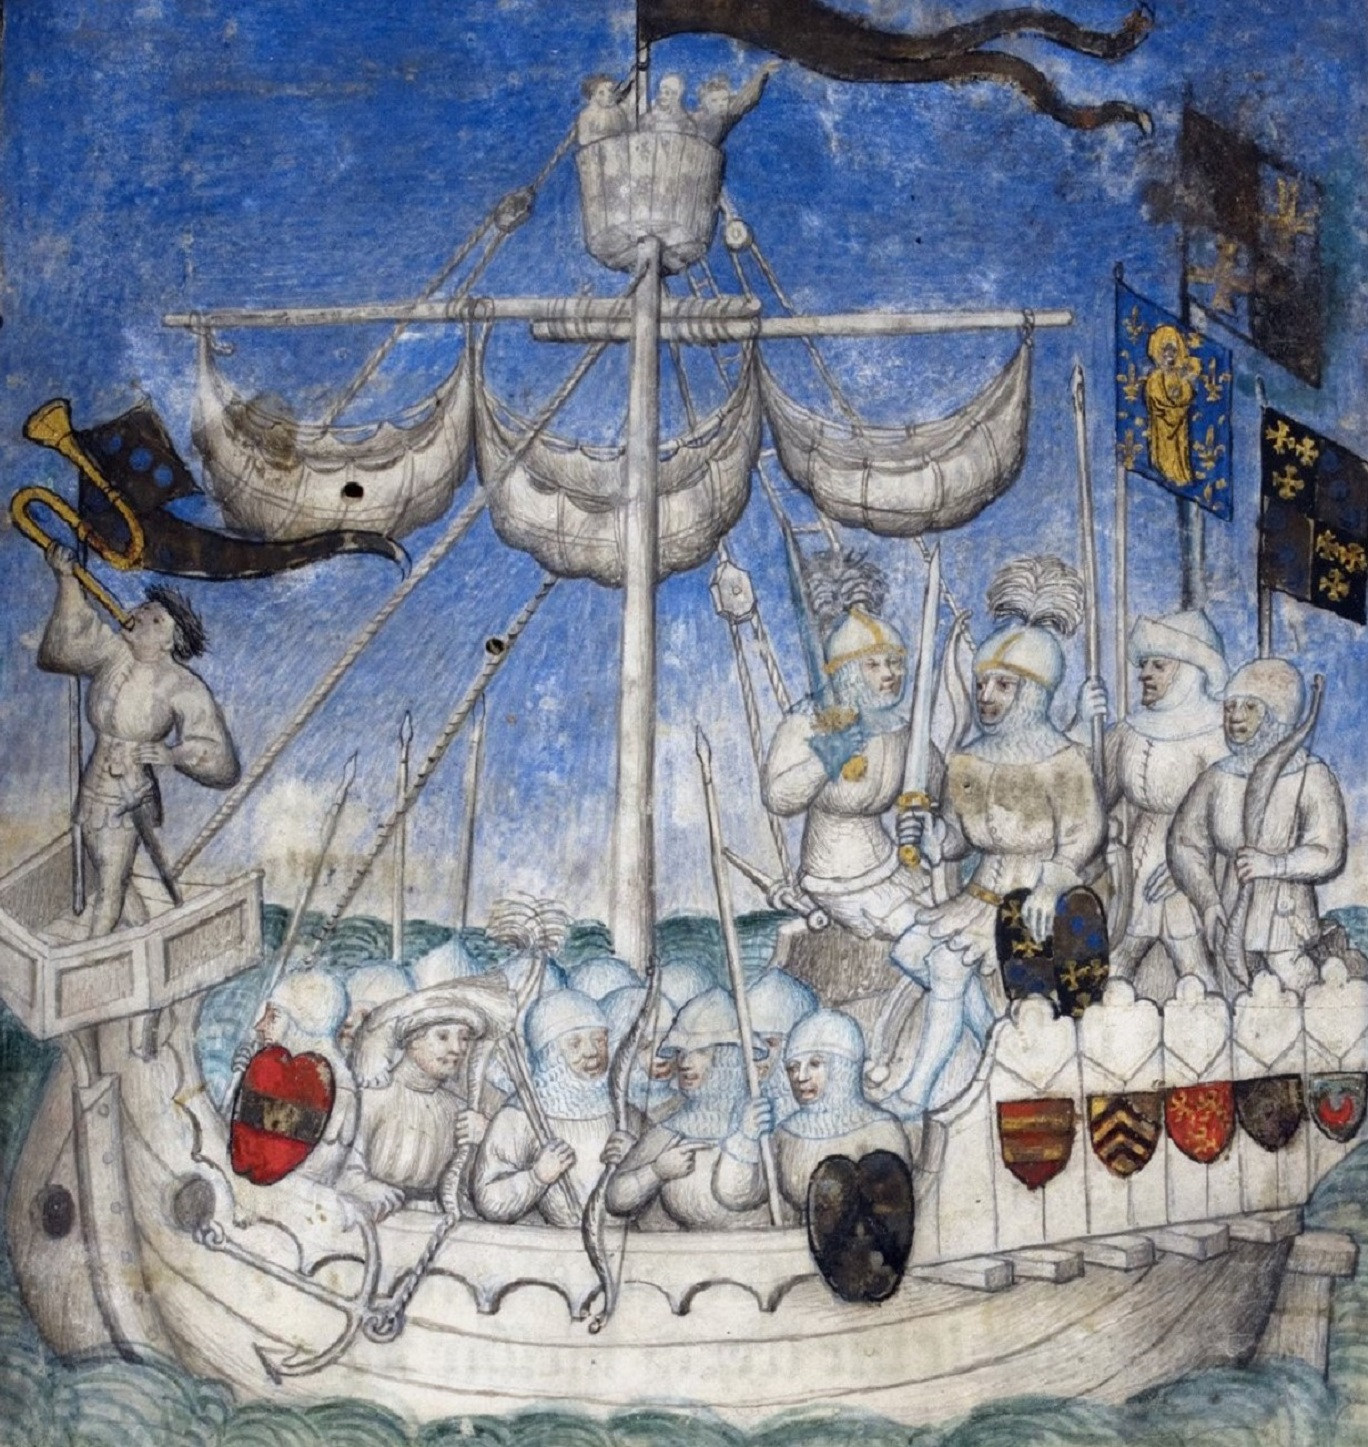 Illuminated manuscript showing a ship